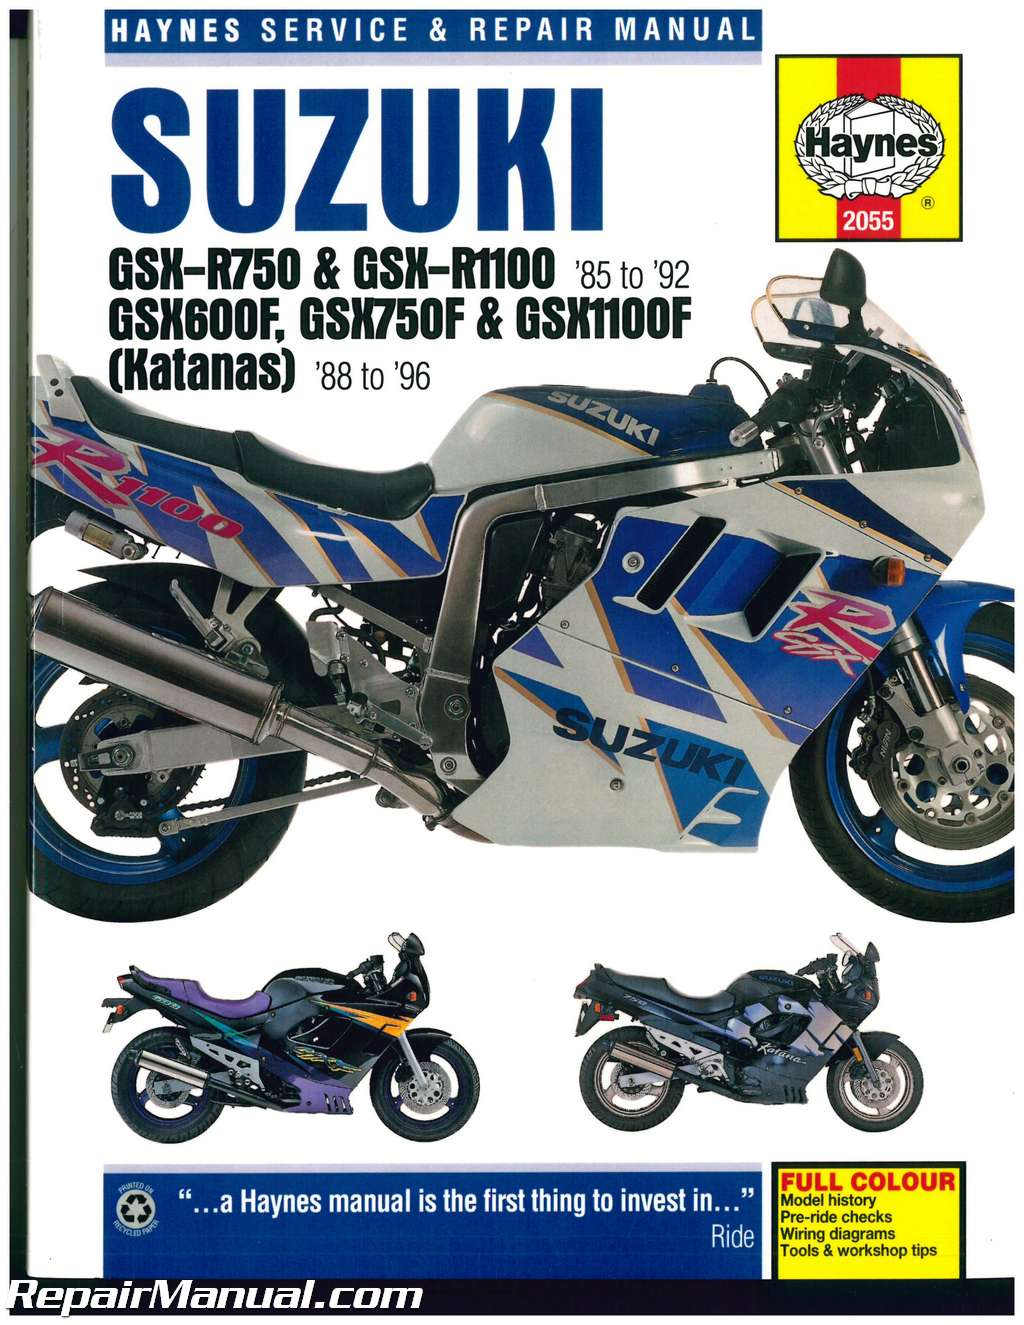 suzuki katana workshop manual open source user manual u2022 rh dramatic varieties com 2004 suzuki katana 600 owners manual Front Fairing for 92 Suzuki Katana 600